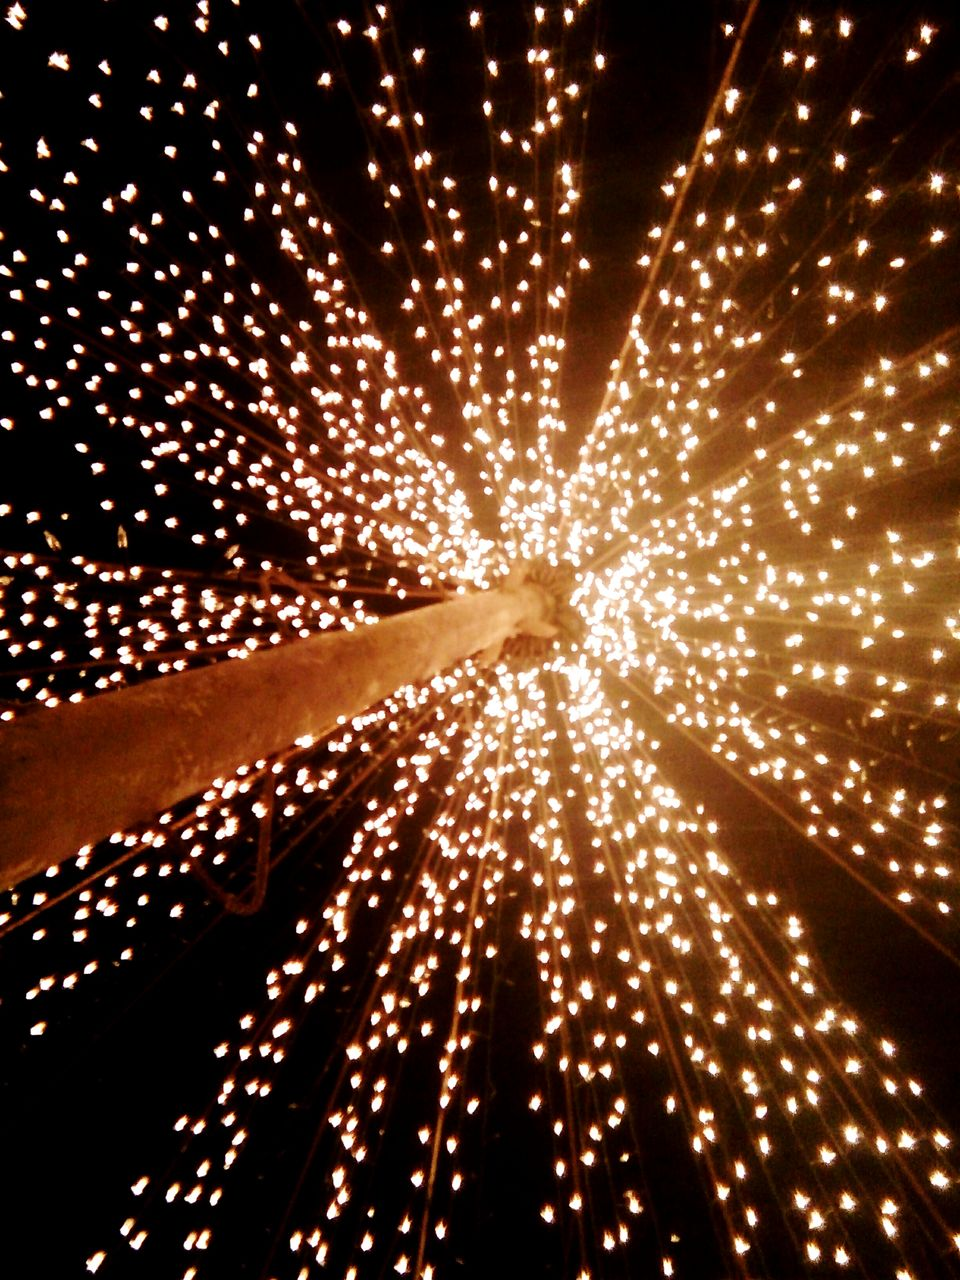 glowing, celebration, illuminated, exploding, pattern, firework - man made object, arts culture and entertainment, abstract, night, no people, firework display, gold colored, outdoors